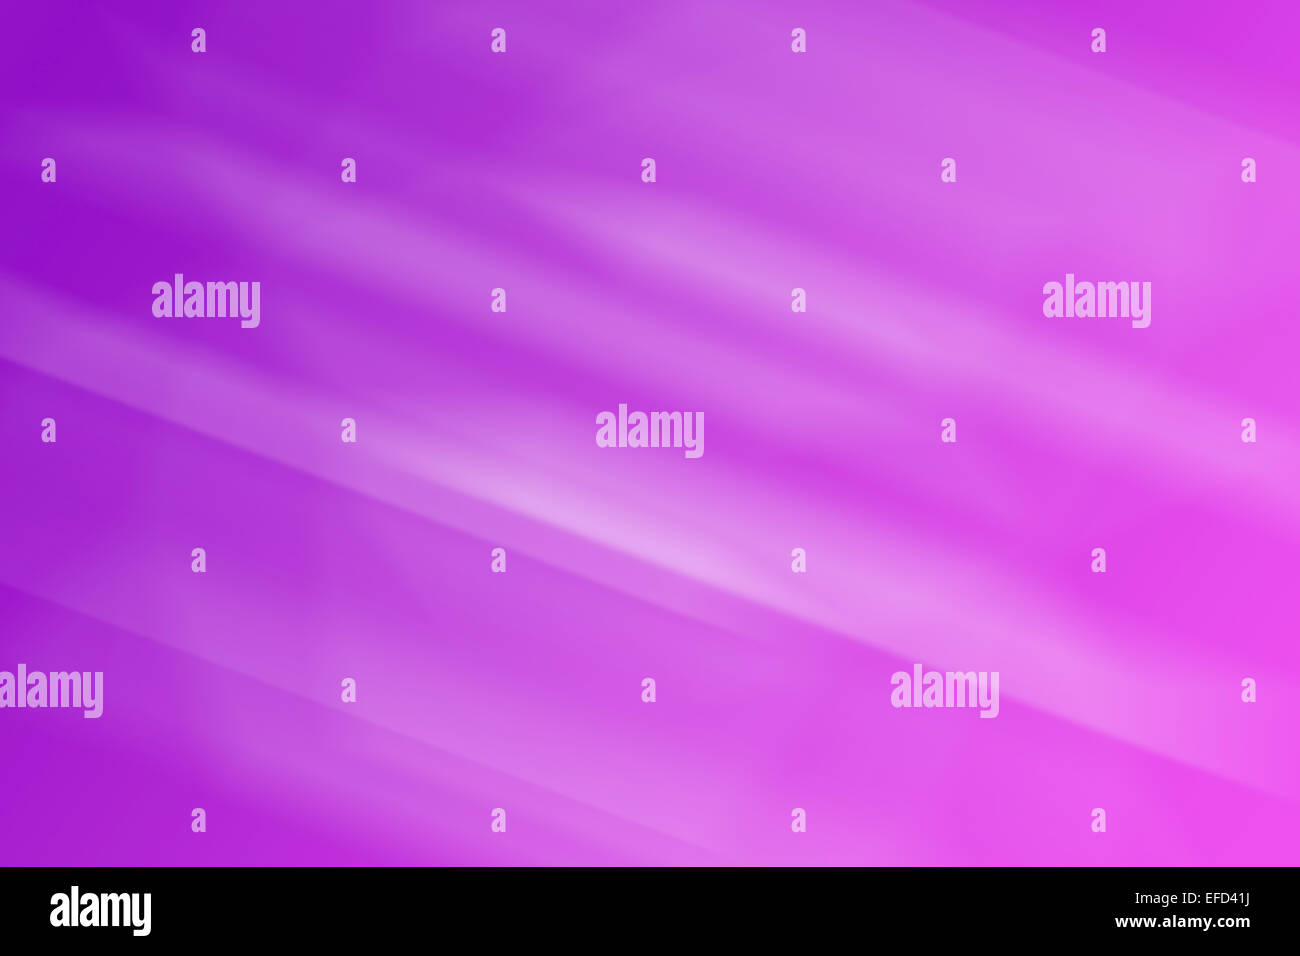 A violet to magenta graduated image with diffused white lines for use as a background  for your text and images - Stock Image